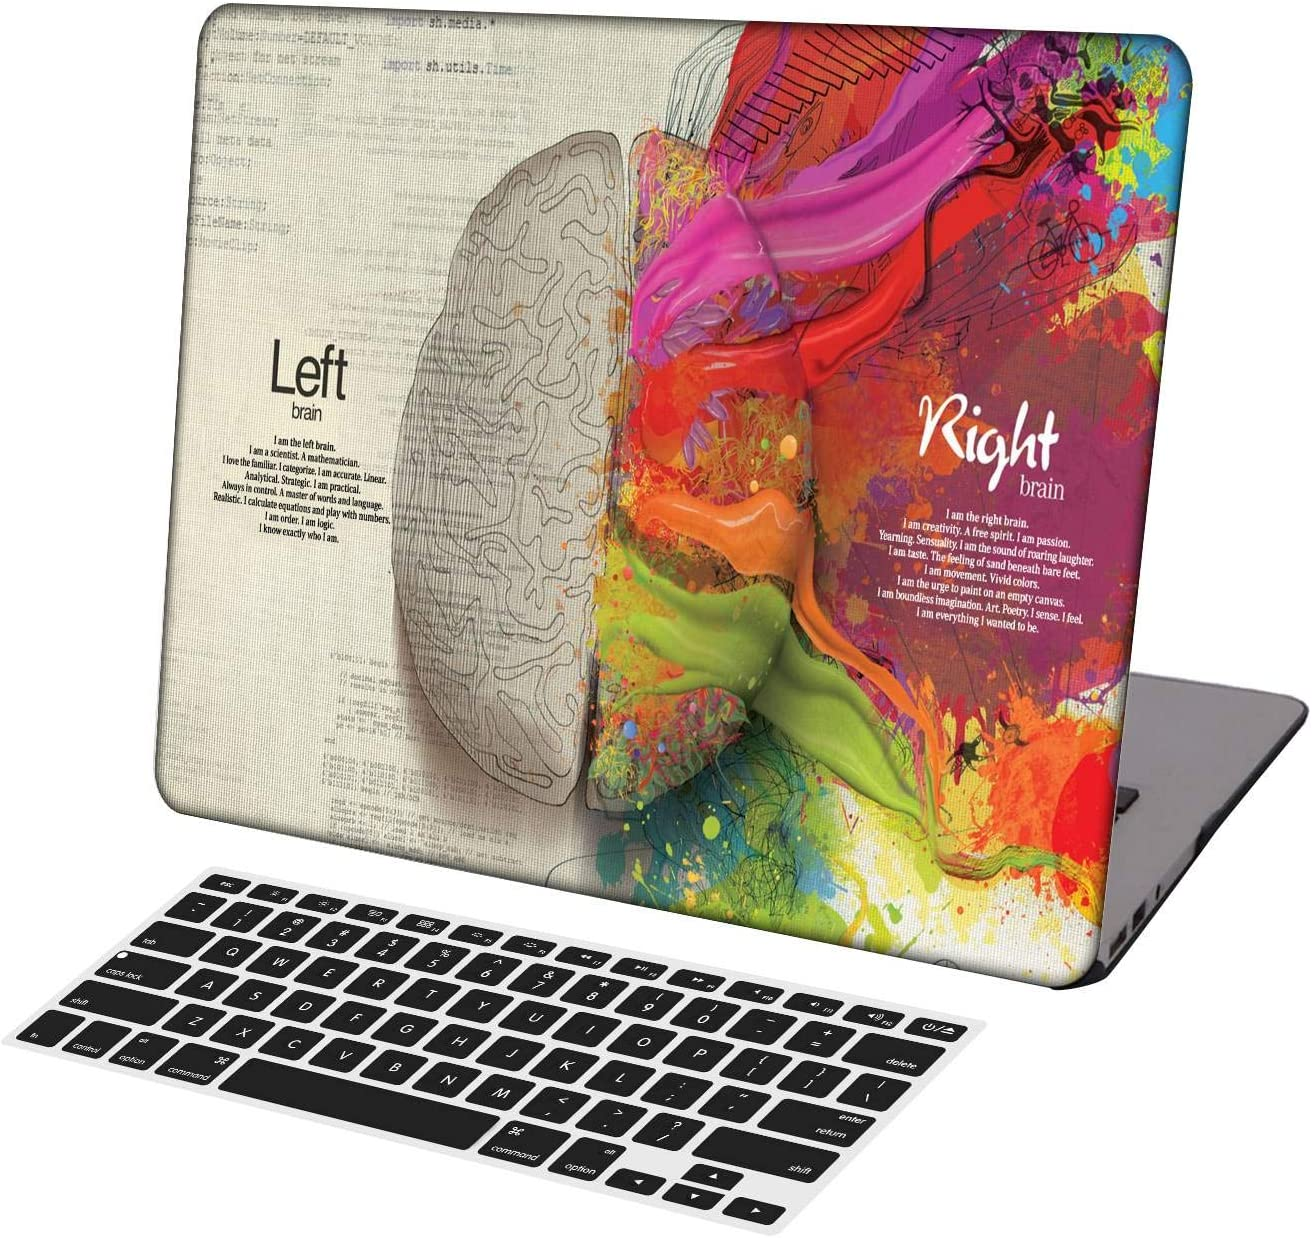 KSK KAISHEK Laptop Case for MacBook Air 13 inch(2018-2020 Release,Retina Display,M1) Model A2337 A2179 A1932,Plastic Hard Shell Keyboard Cover,Left and Right Brain